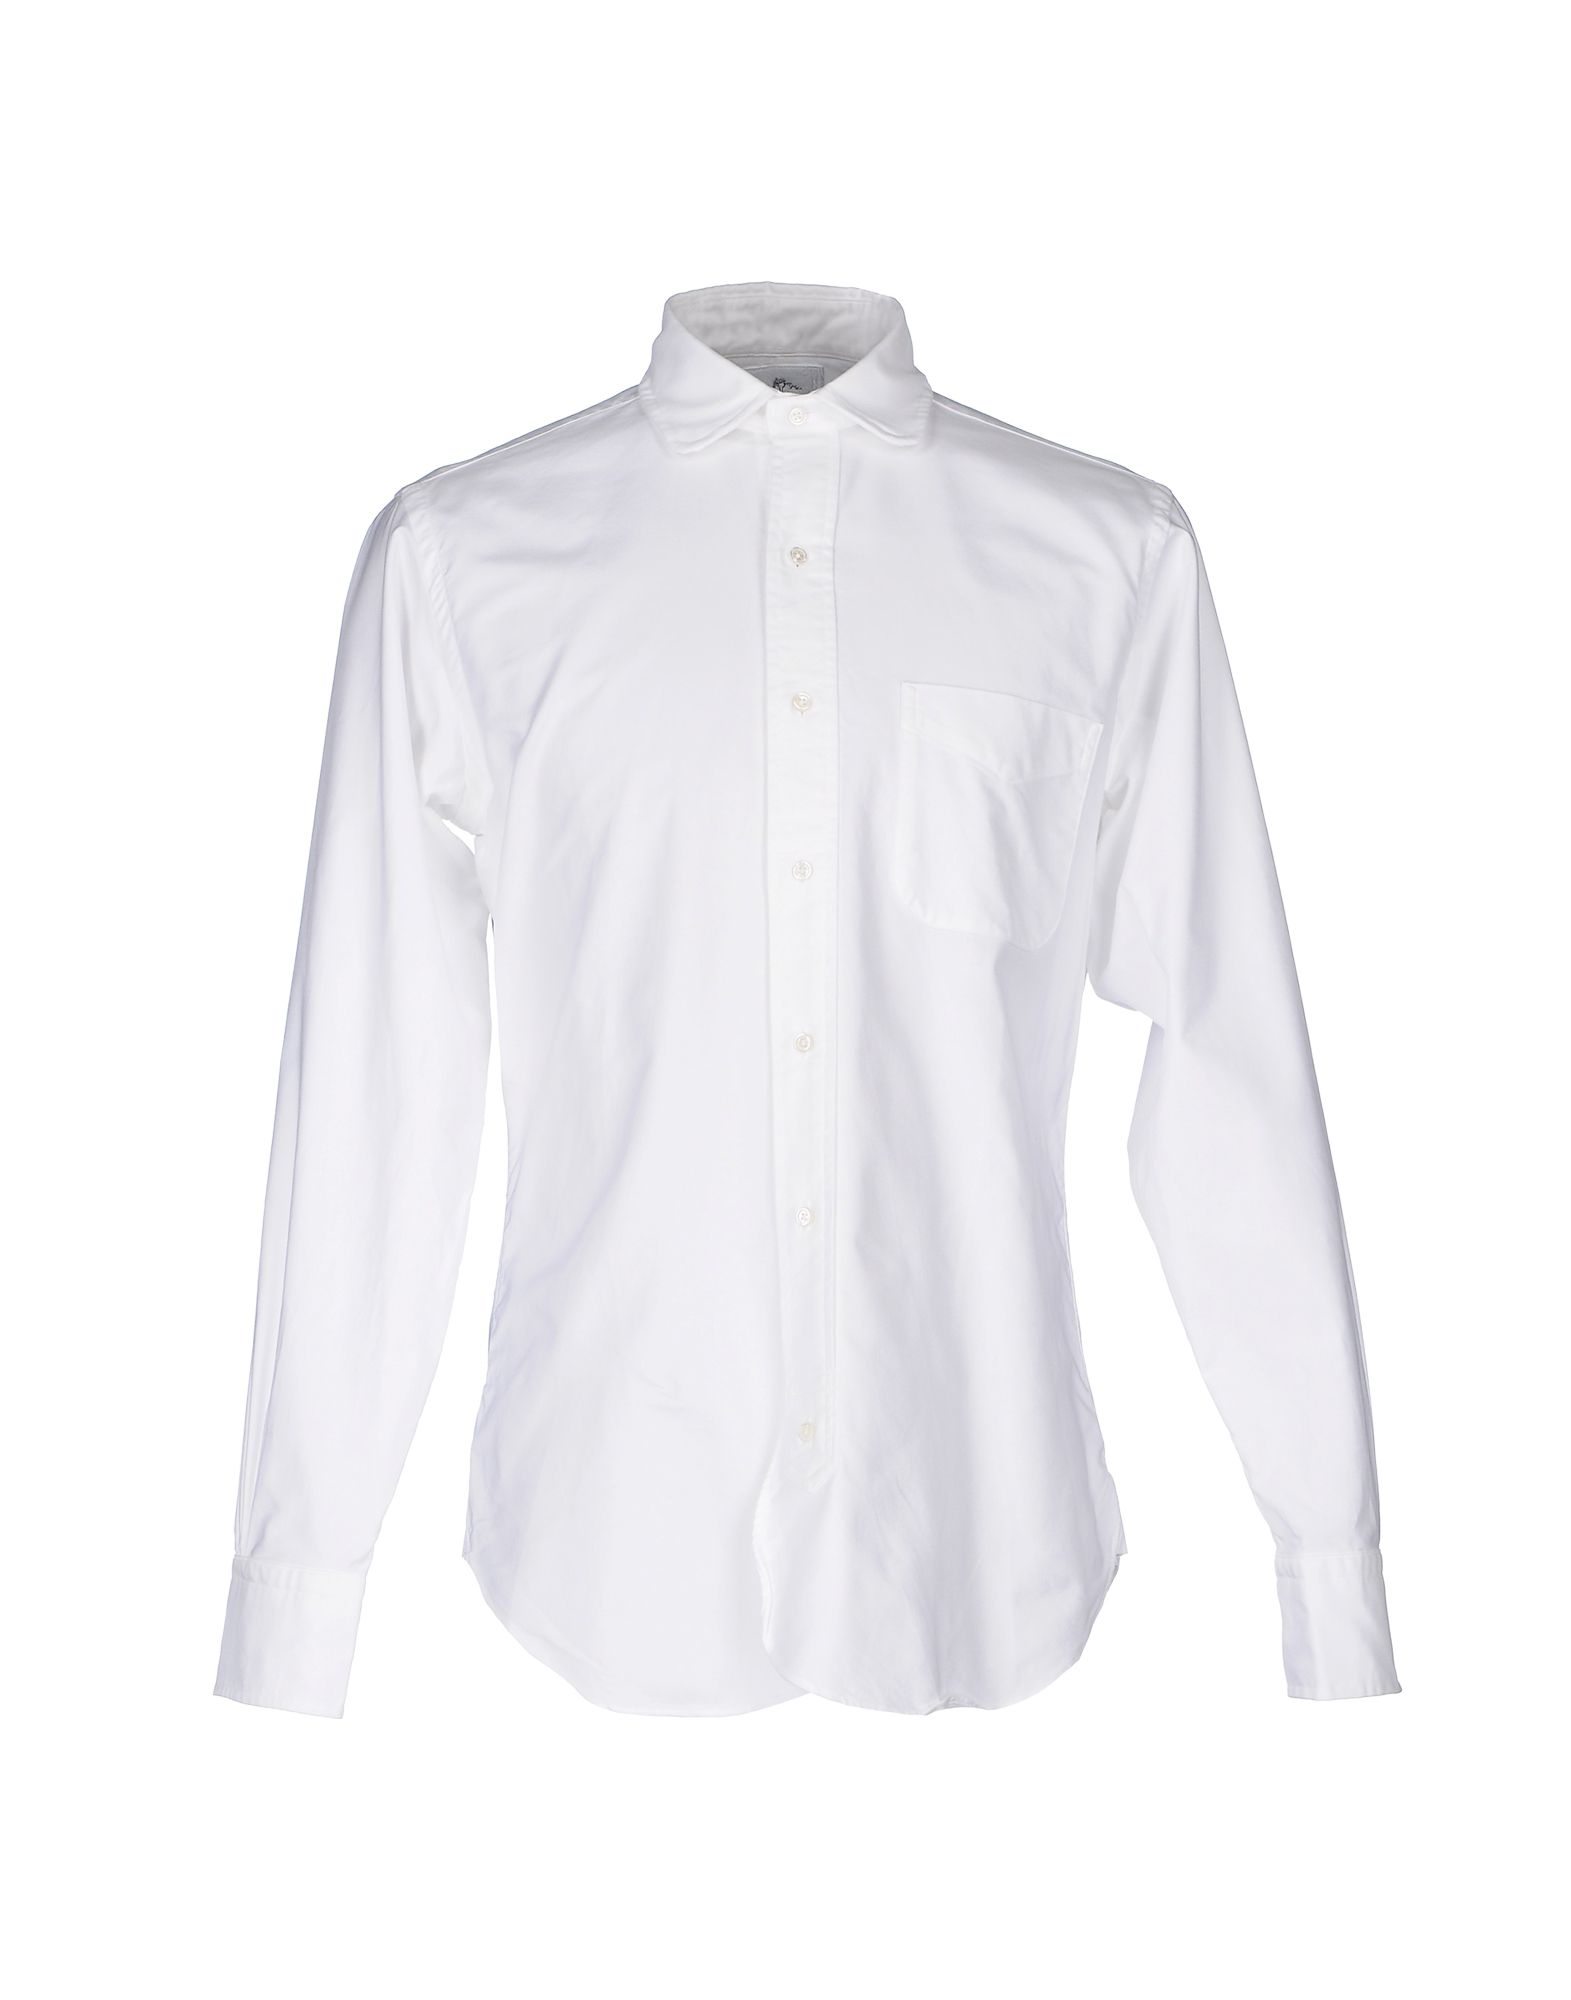 Black fleece by brooks brothers shirt in multicolor for Brooks brothers shirt size guide